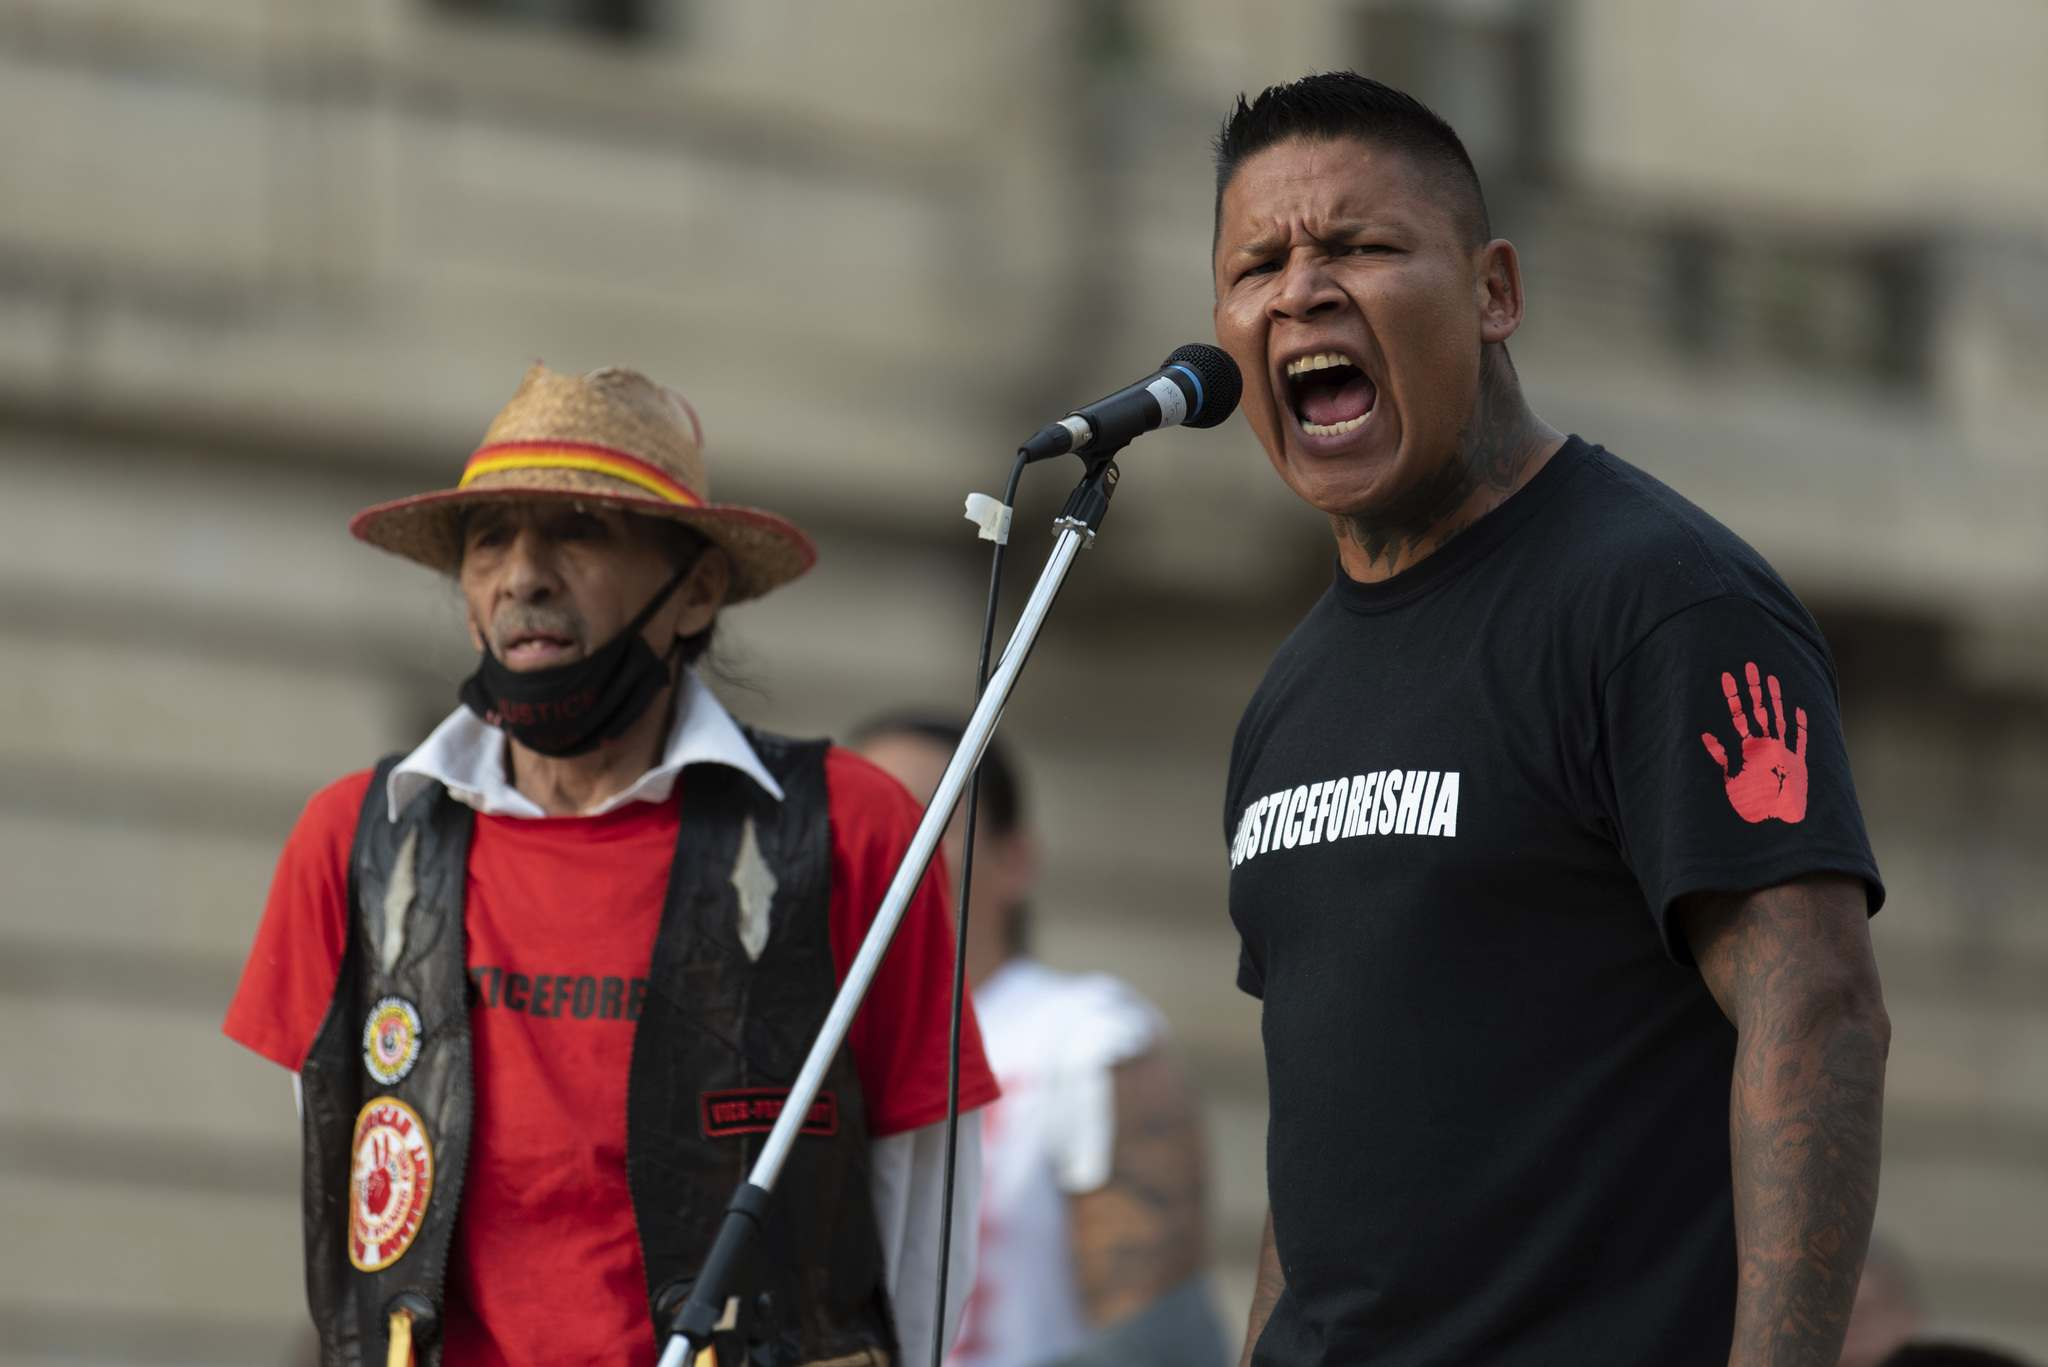 JESSE BOILY / WINNIPEG FREE PRESS</p><p>William Hudson, the father of Eishia Hudson, speaks to hundreds who gathered to bring awareness to police violence and the death of Eishia Hudson outside the legislative building.</p>